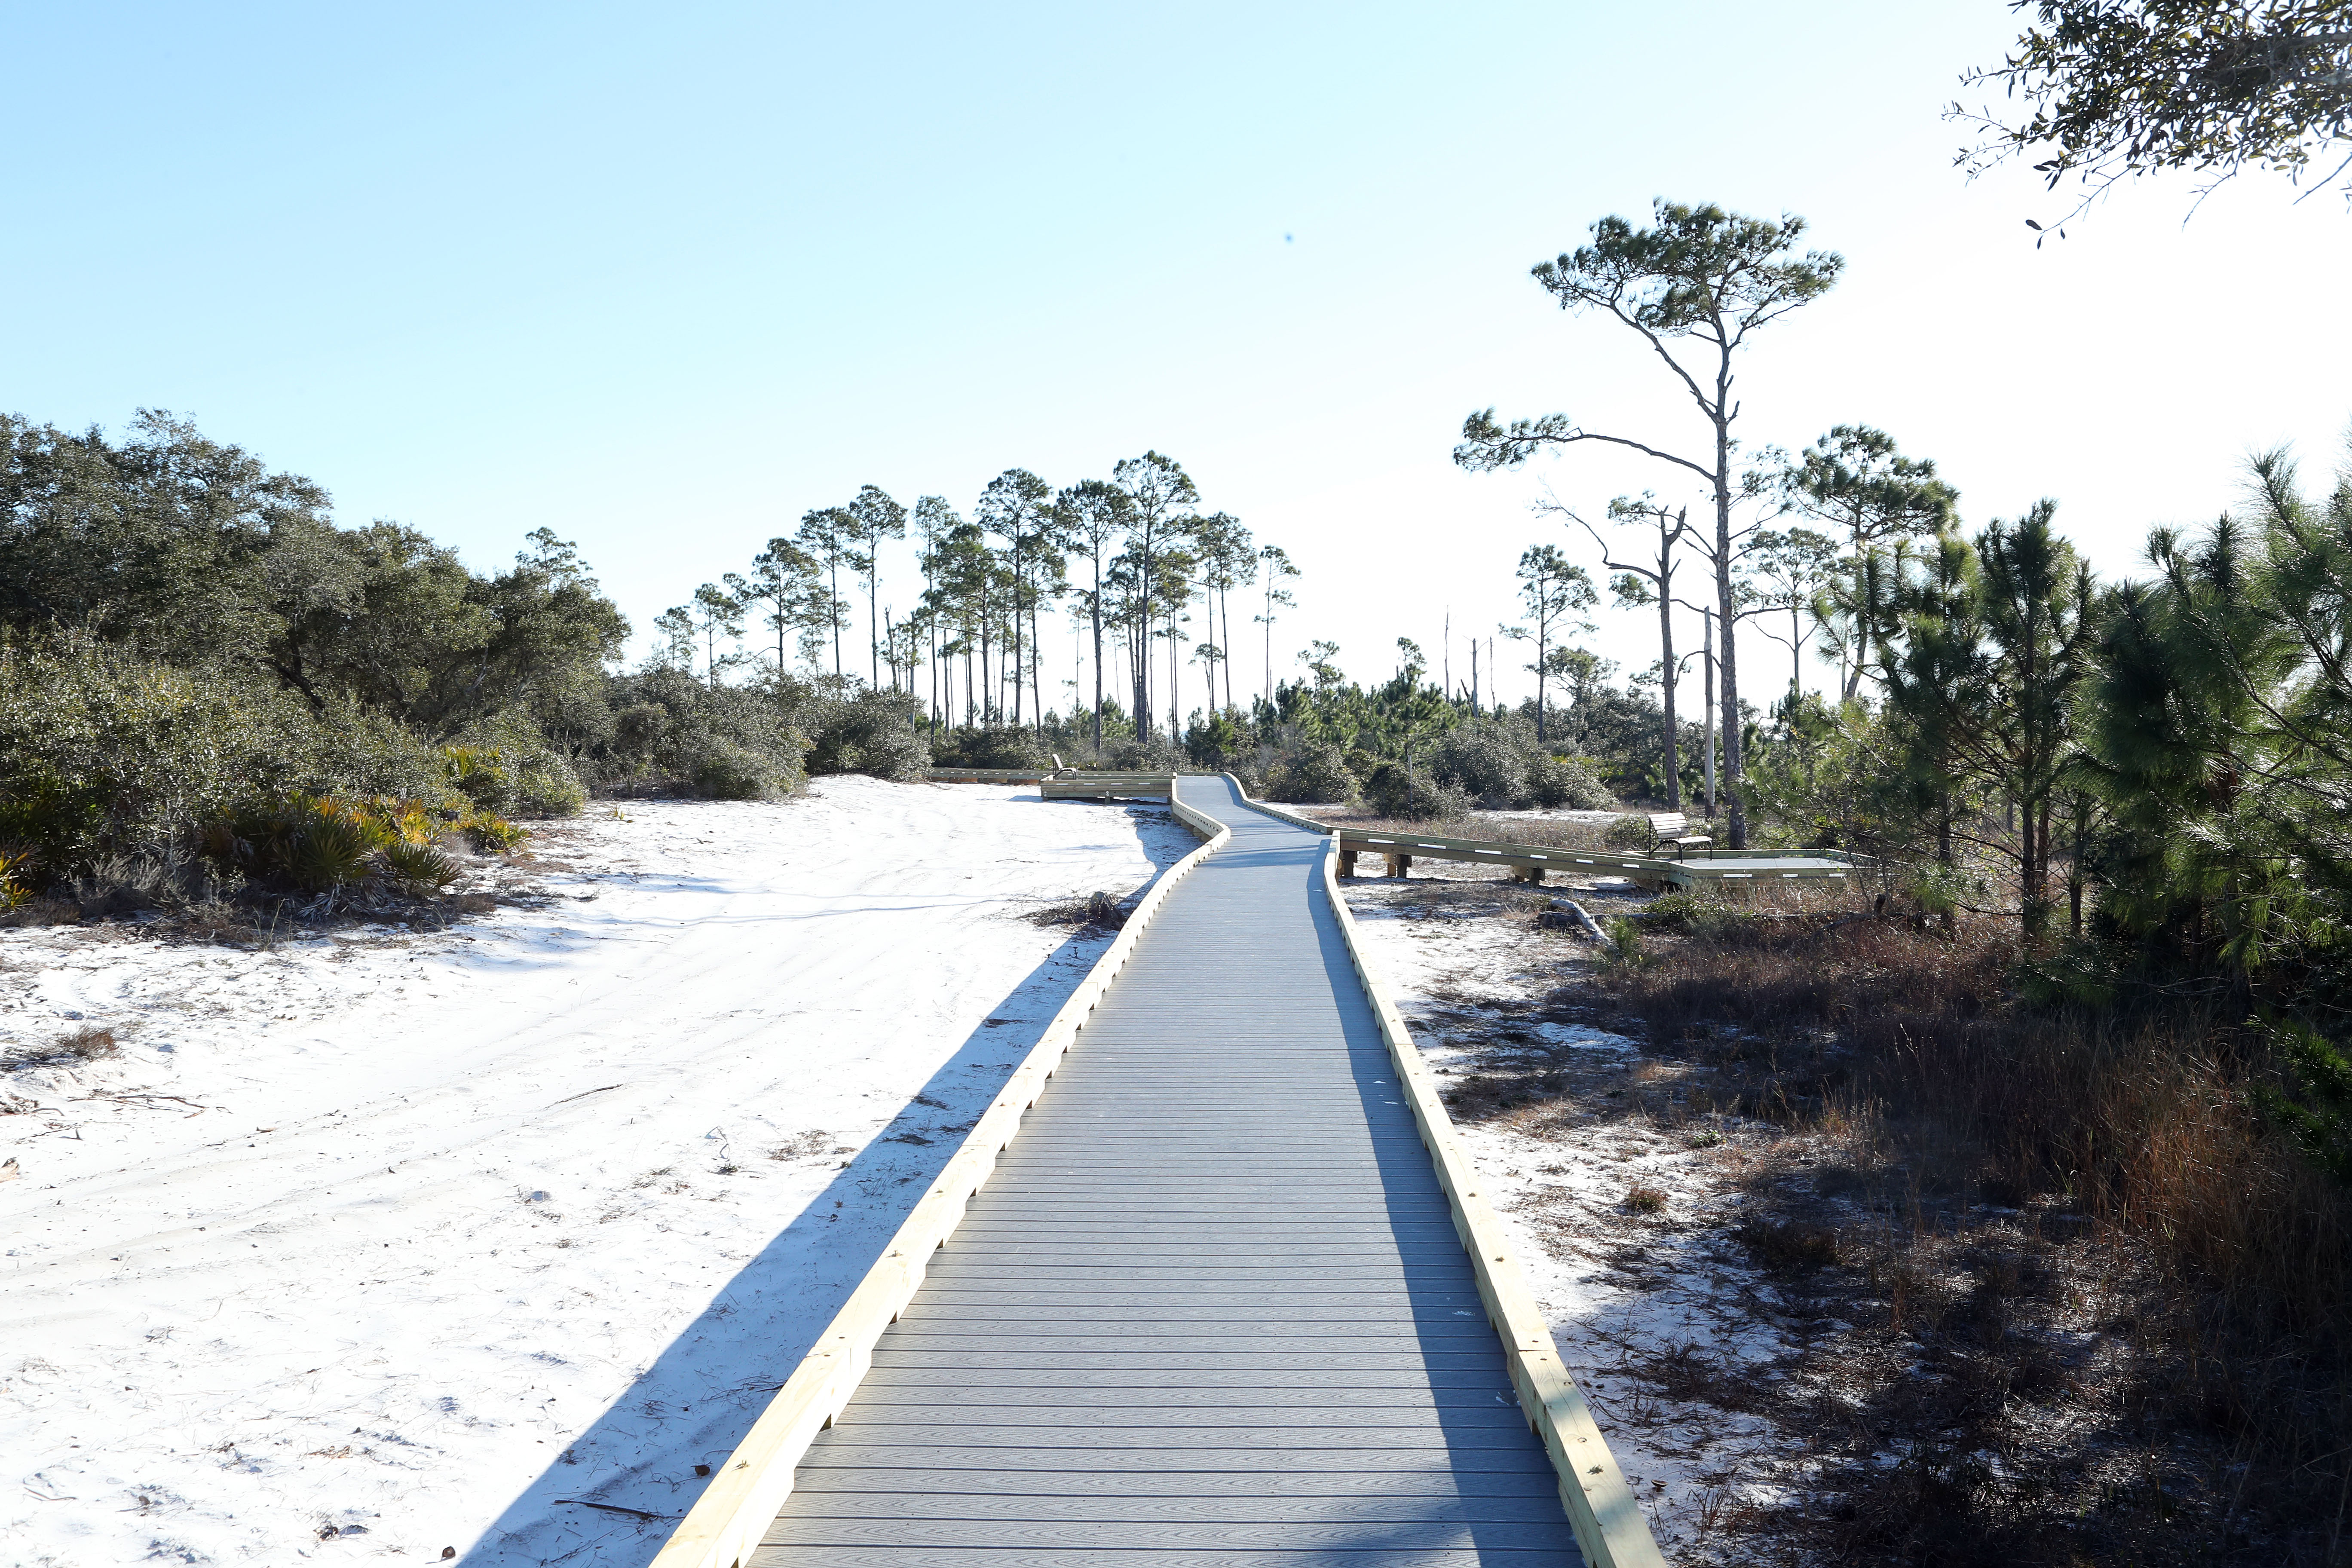 A section of the newly re-opened Jeff Friend Trail in Bon Secour National Wildlife Refuge in Alabama.